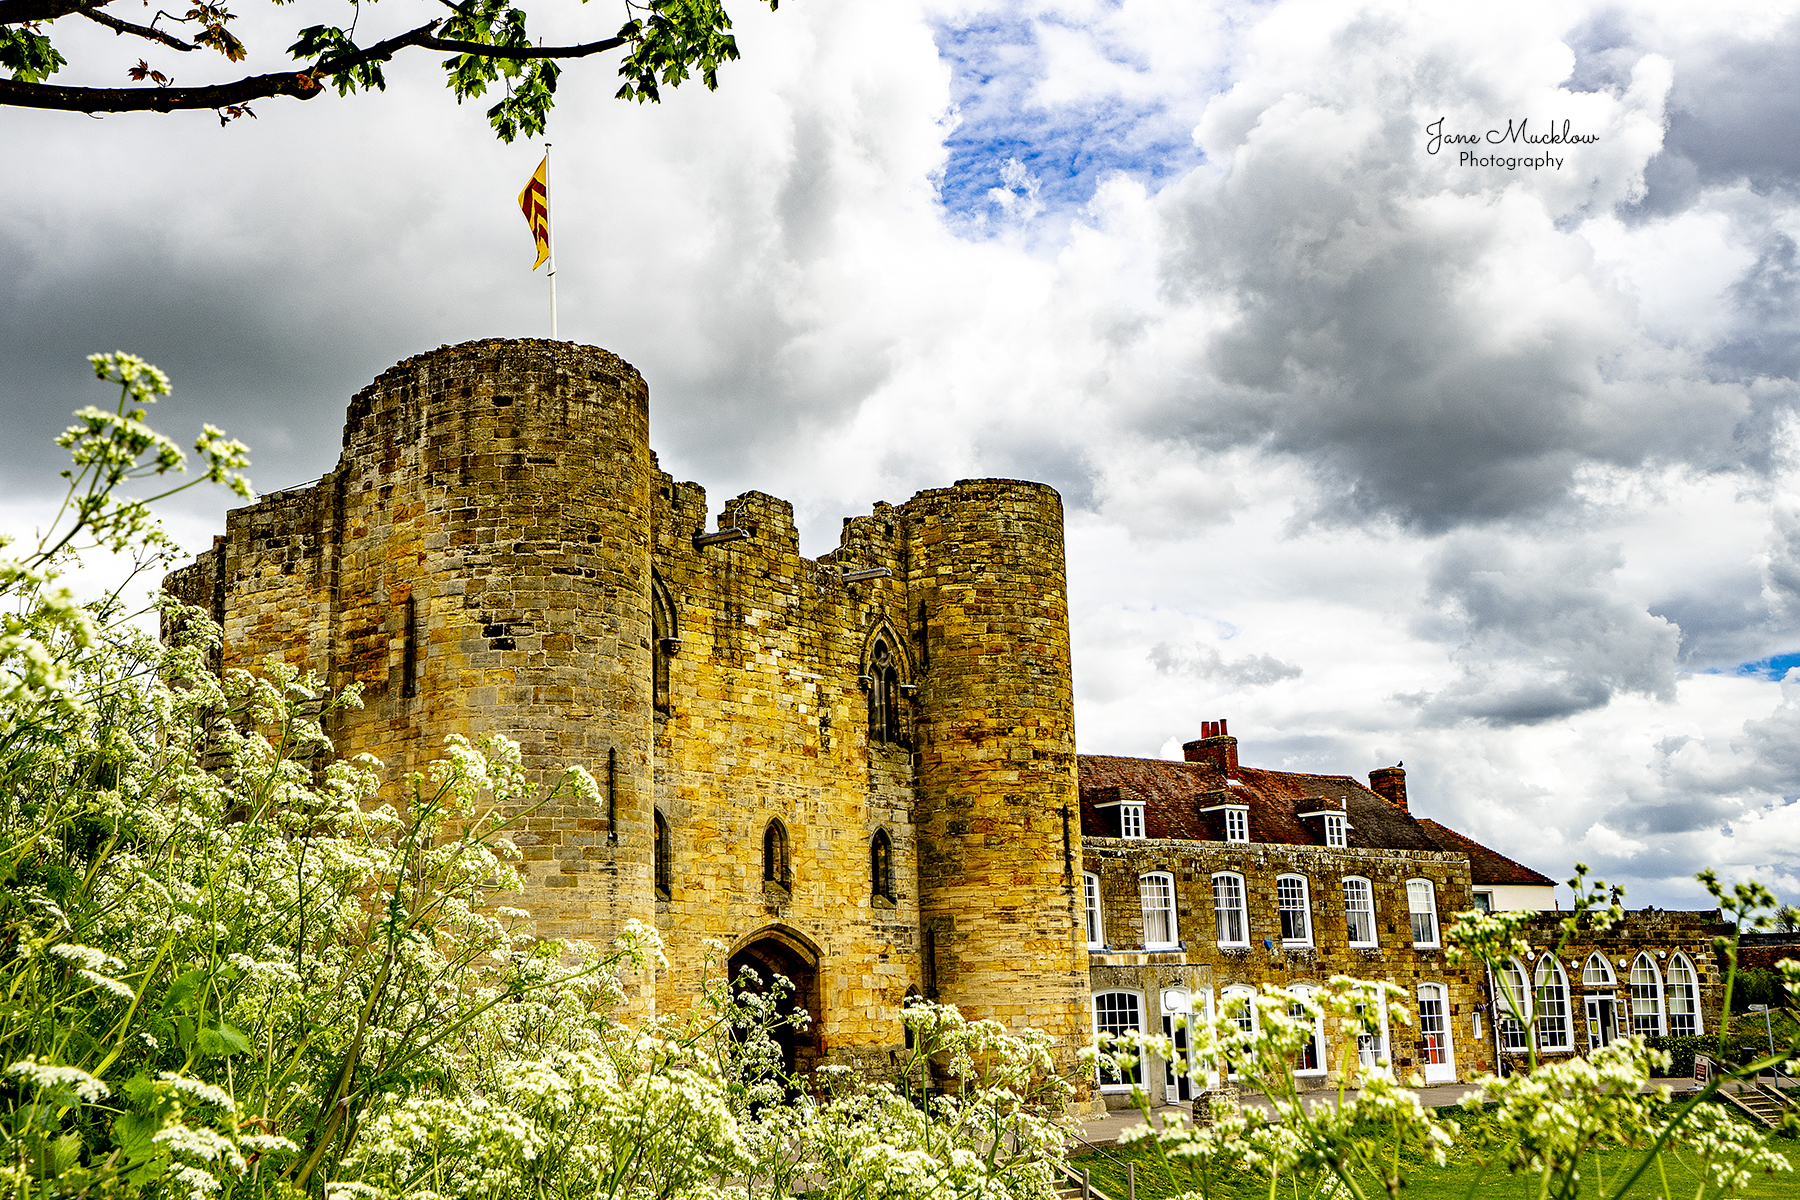 Photo of Tonbridge Castle, clouds and cow parsley, by Jane Mucklow